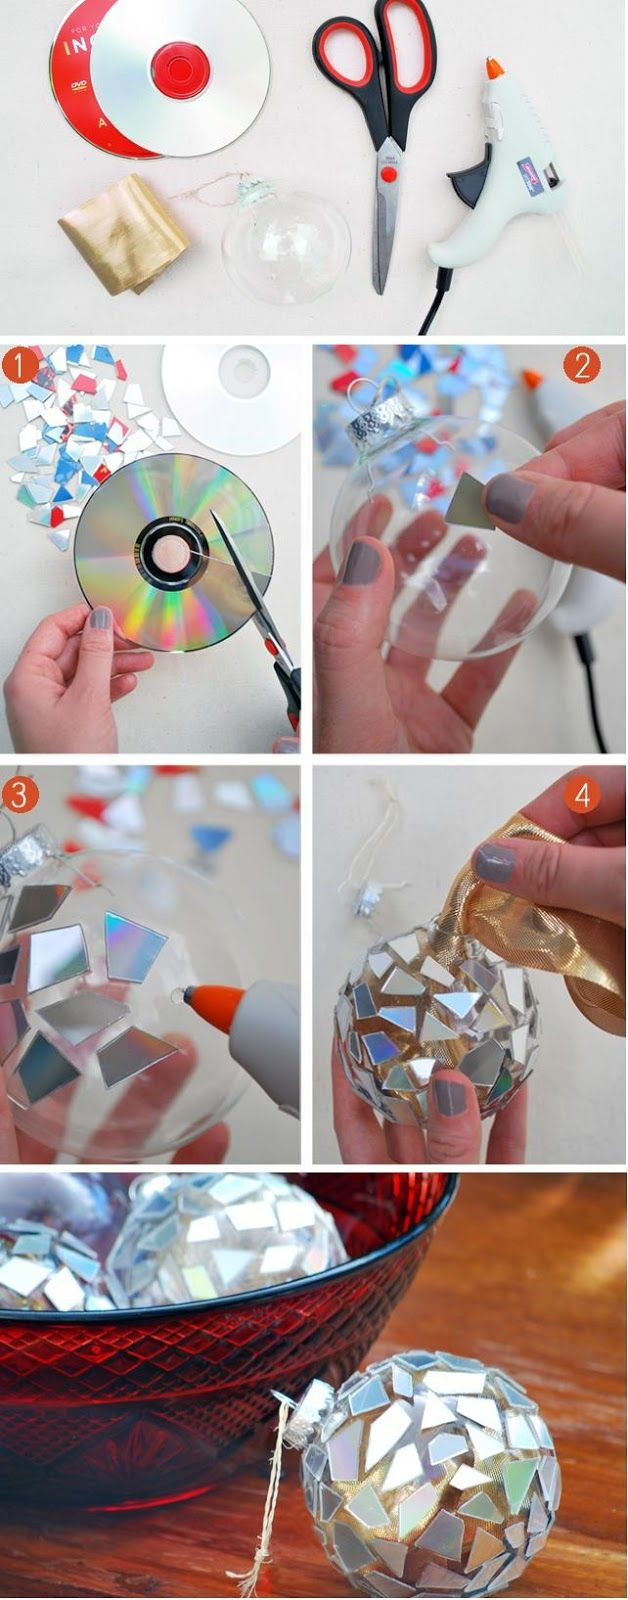 DIY: Mosaic Ornaments from CDs | diy craft TUTORIALS